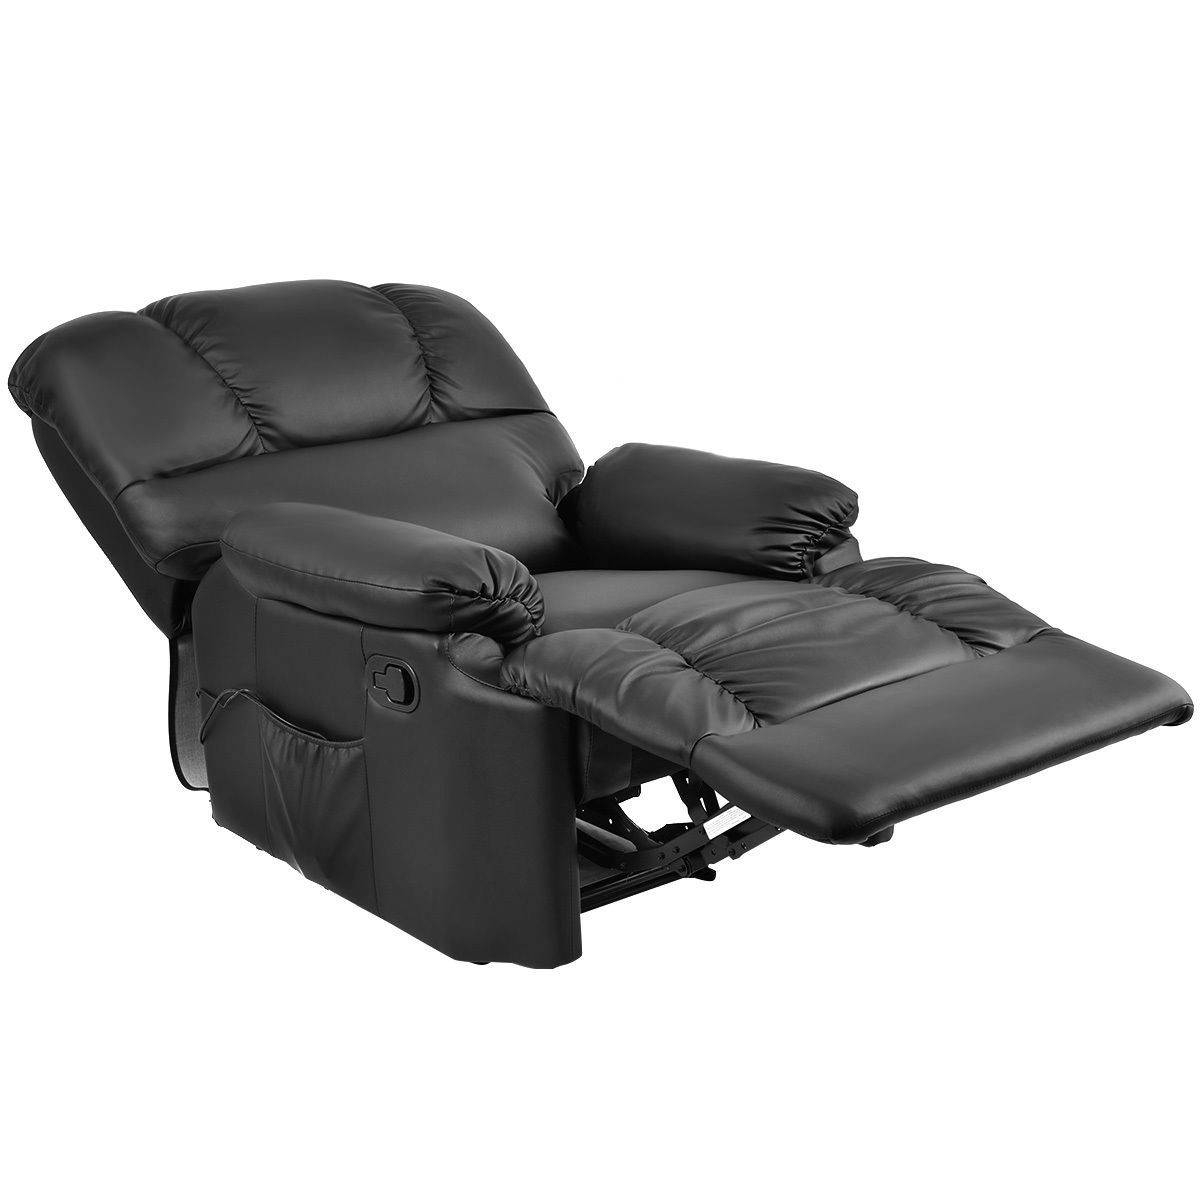 Recliner Massage Sofa Chair Deluxe Ergonomic Lounge Couch Heated W inside Sofa Chair Recliner (Image 22 of 30)